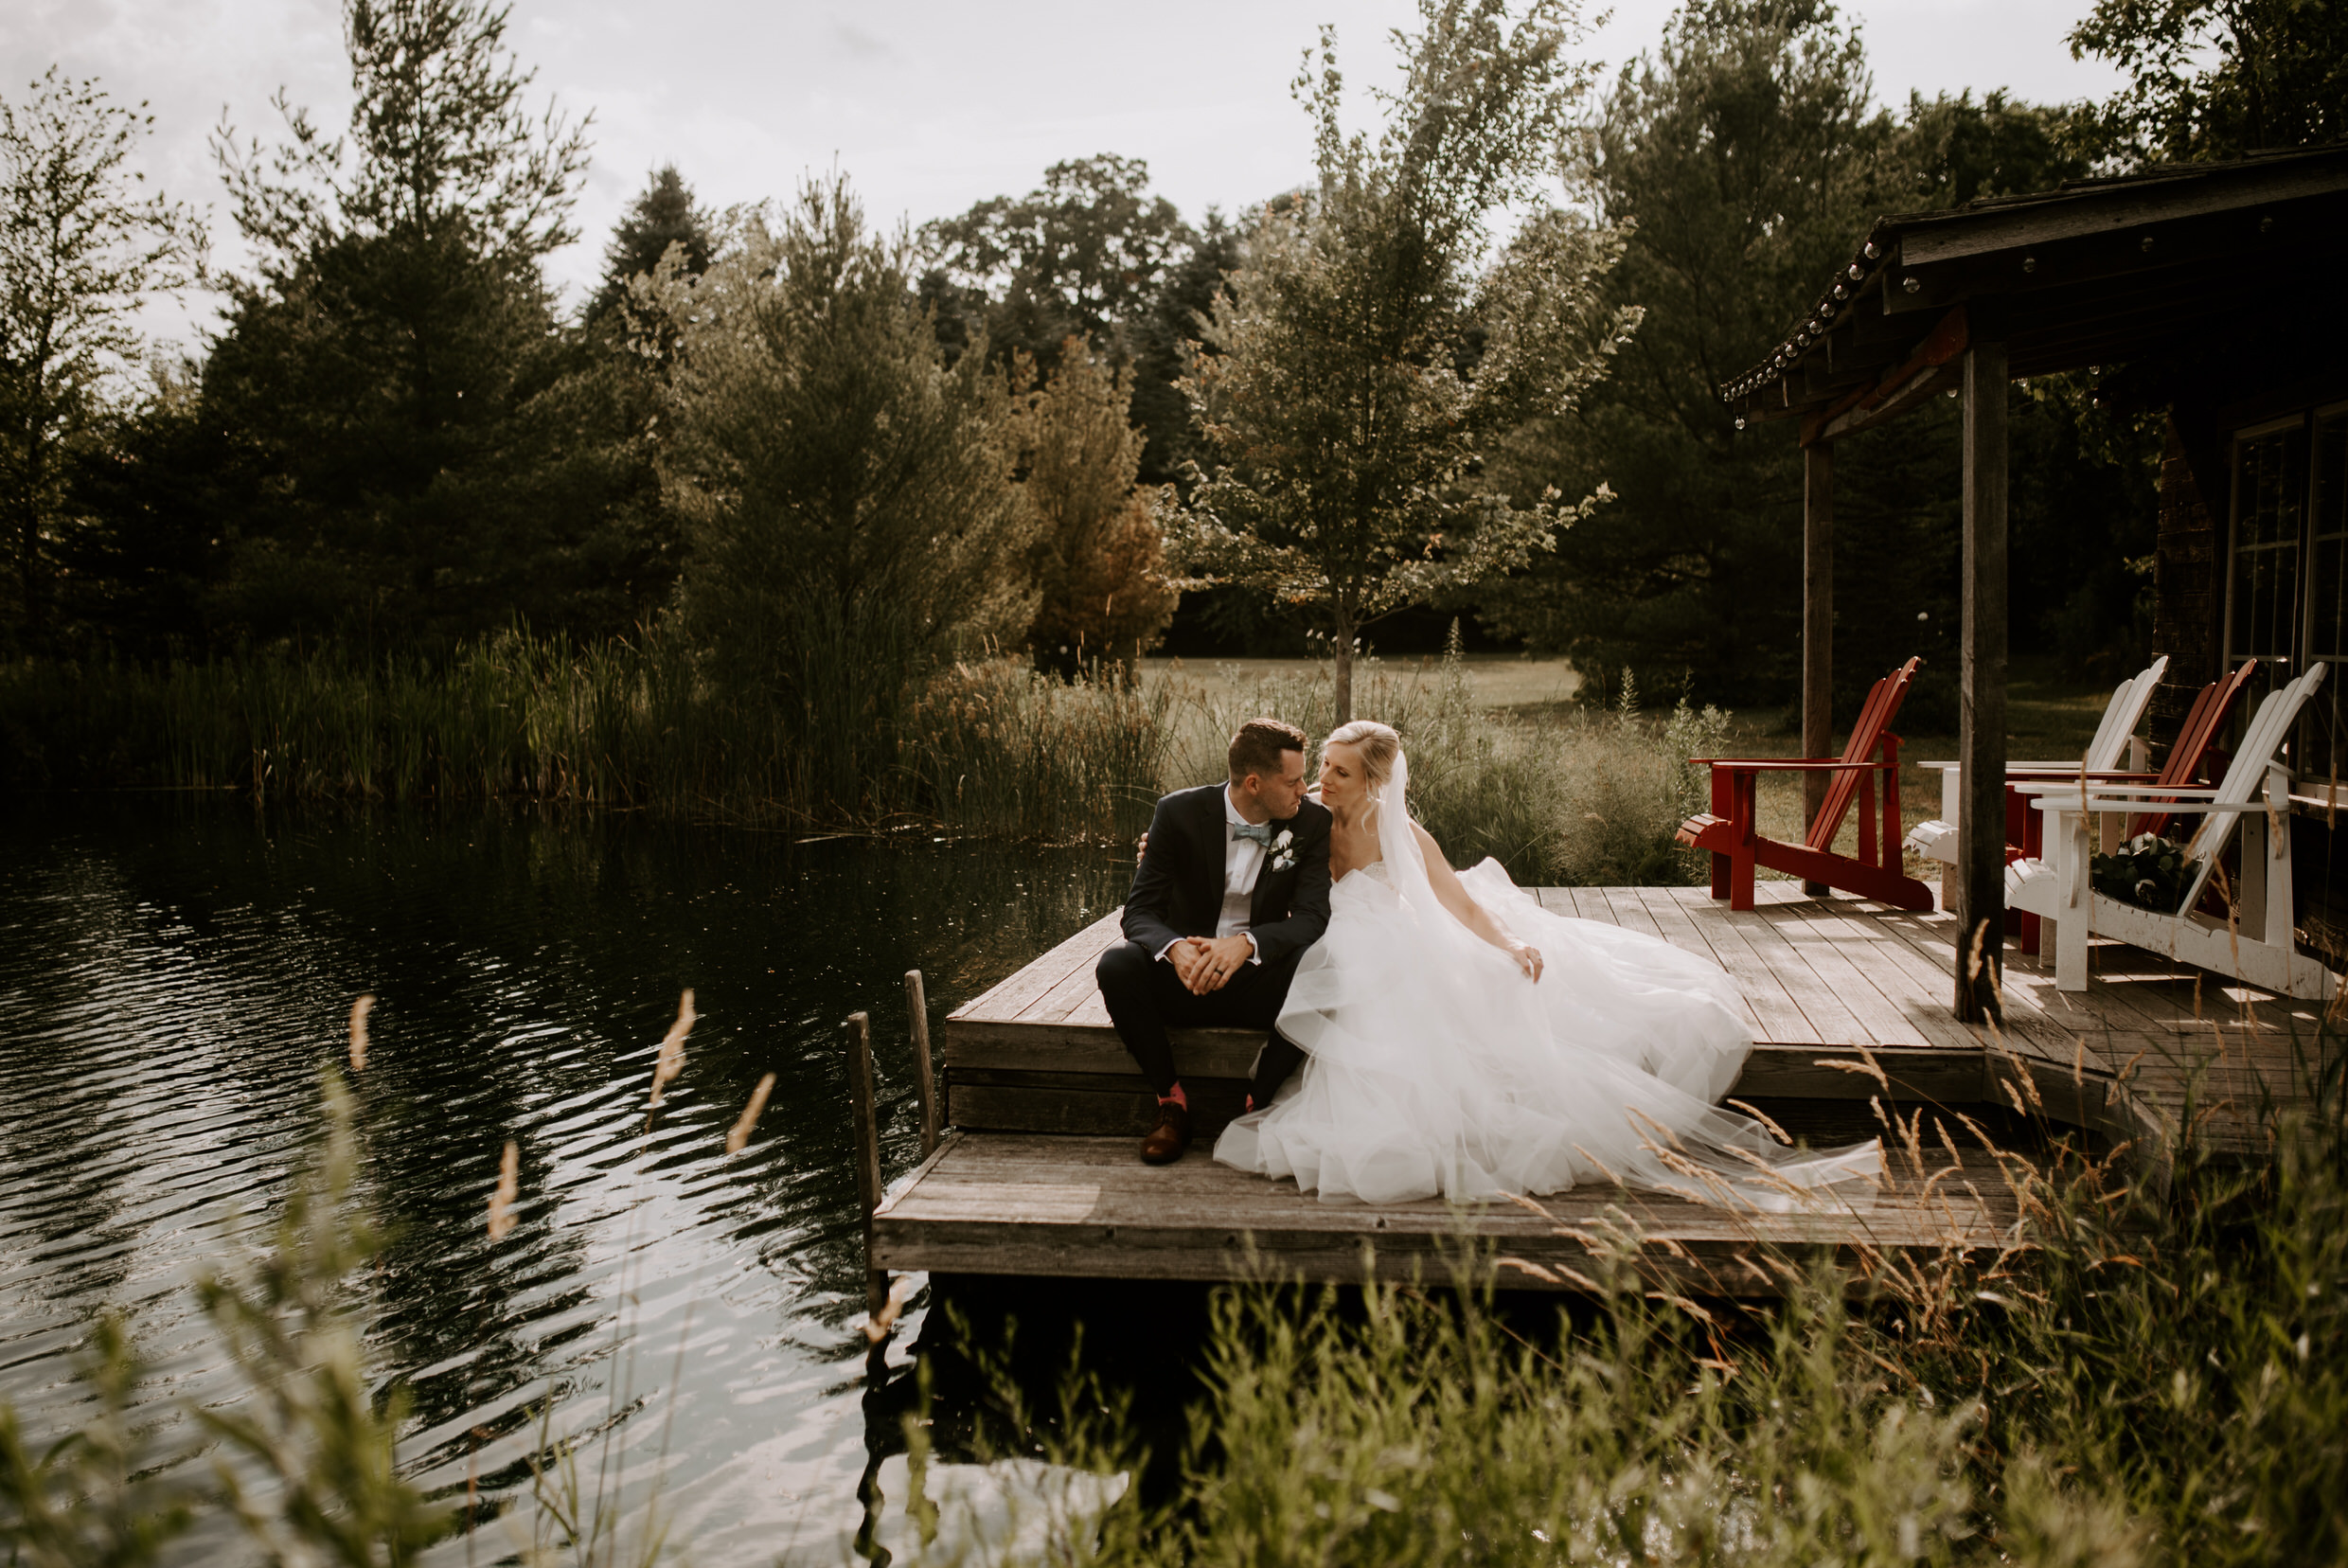 Belcroft Estates Wedding - bride and groom on the dock